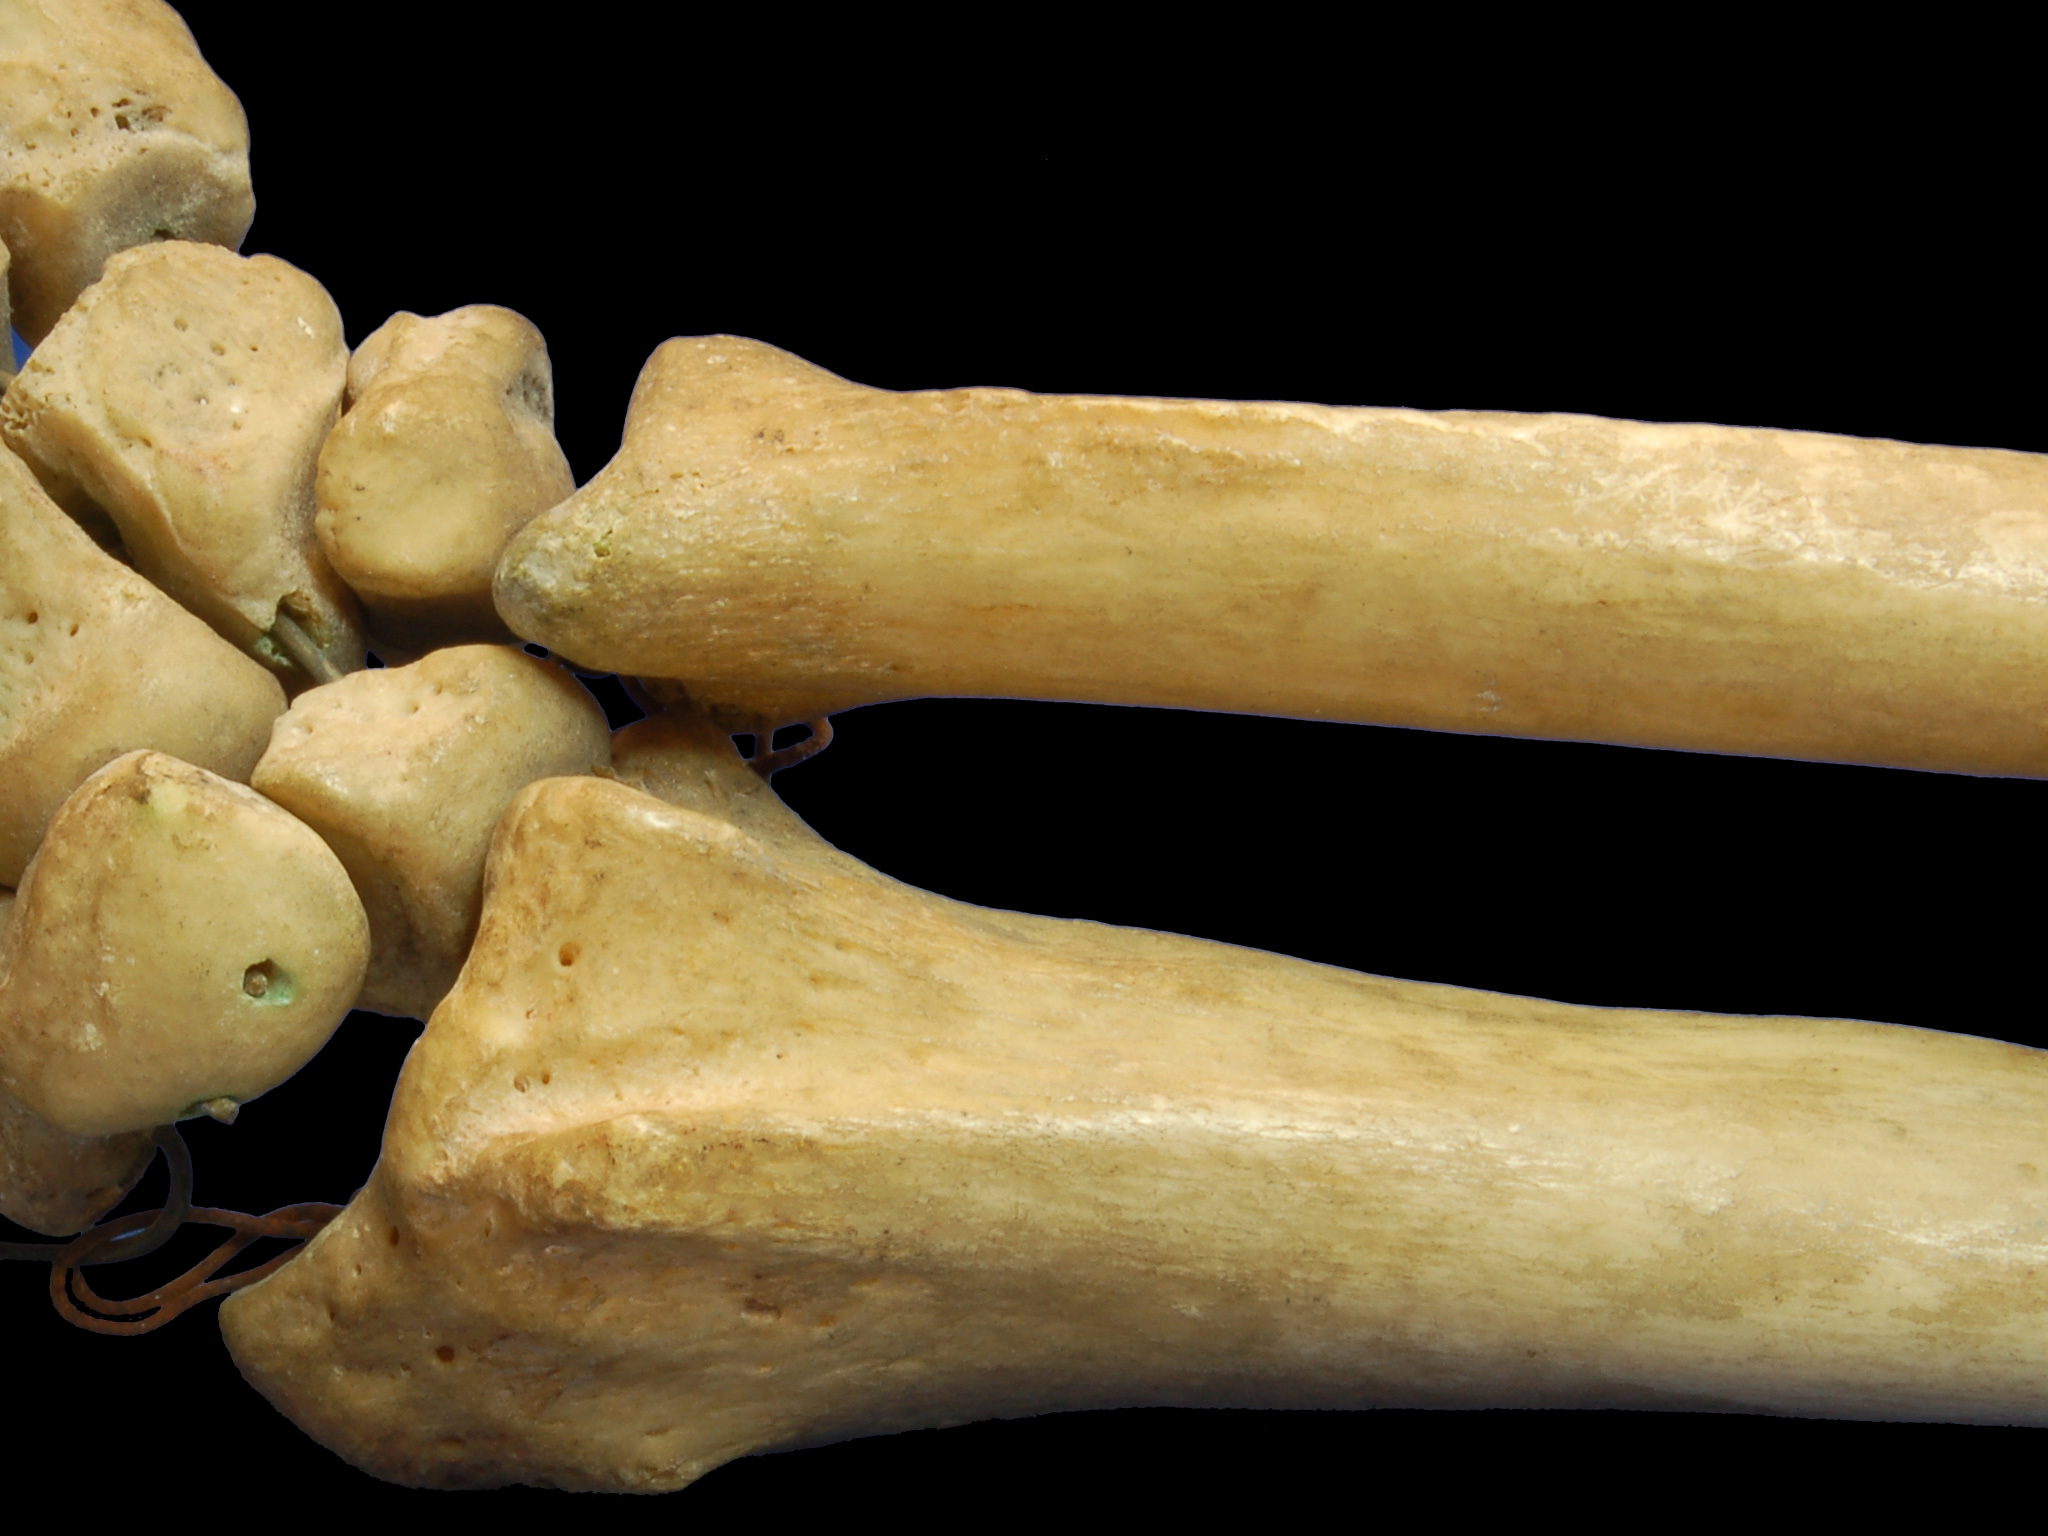 Analytical standards needed for 'reading' Pliocene bones